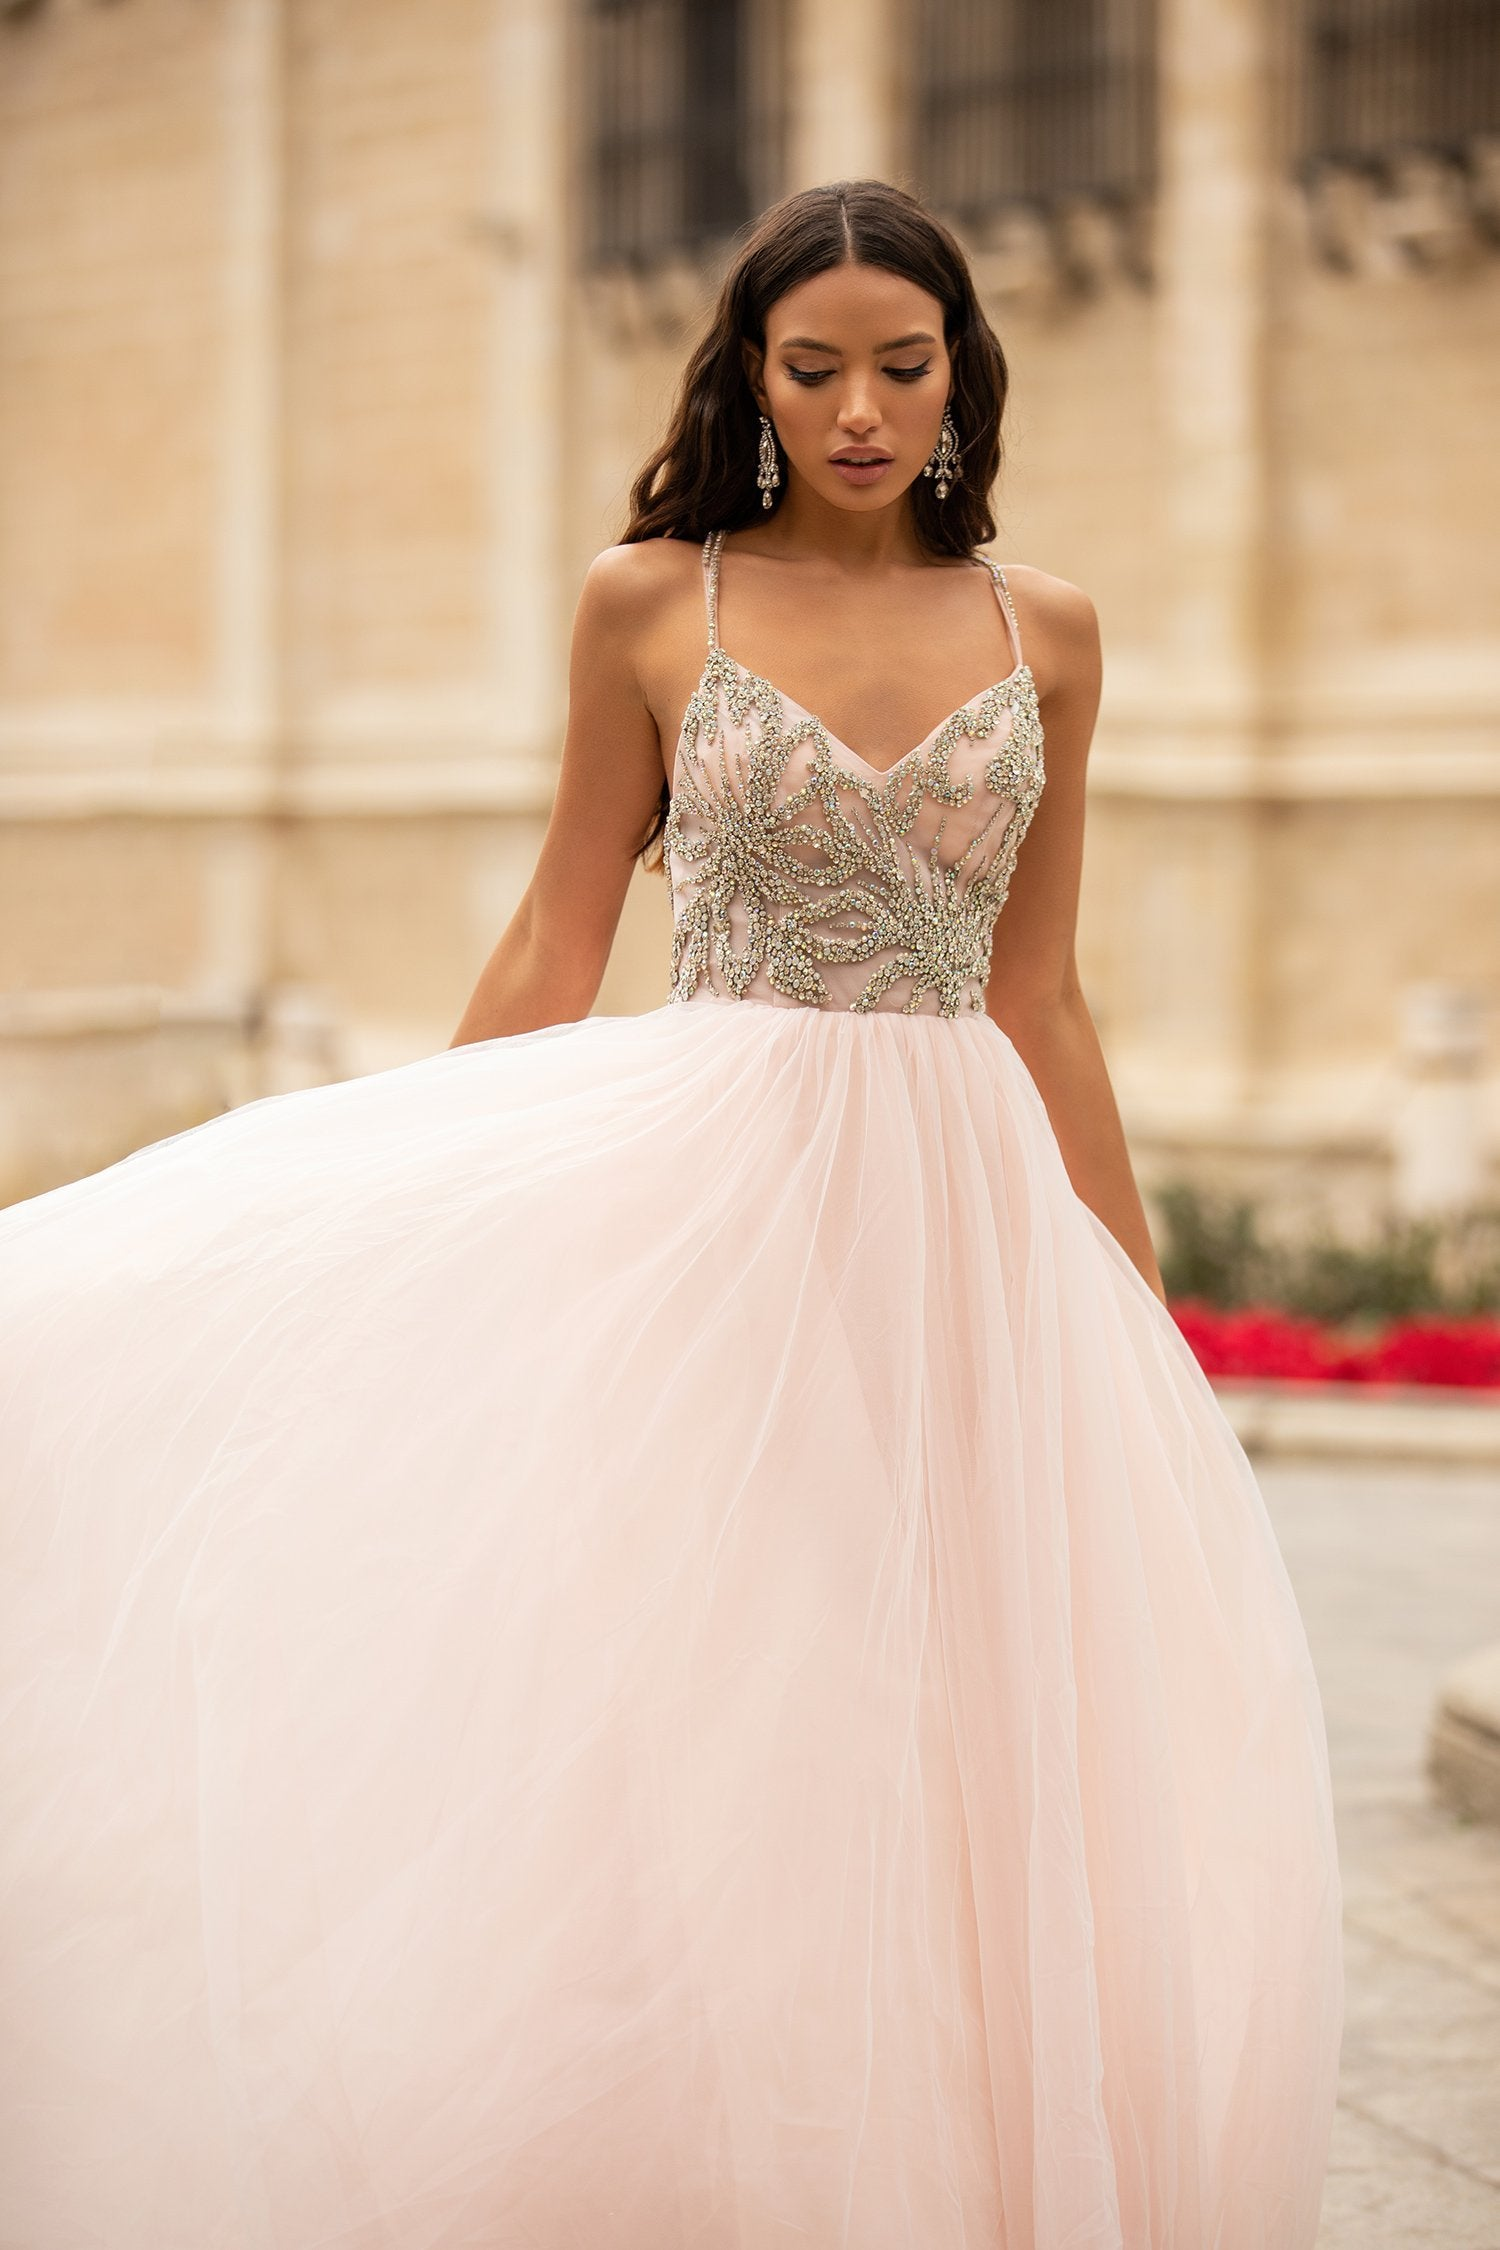 Litzy - Baby Pink Beaded A-Line Tulle Gown with Open Back